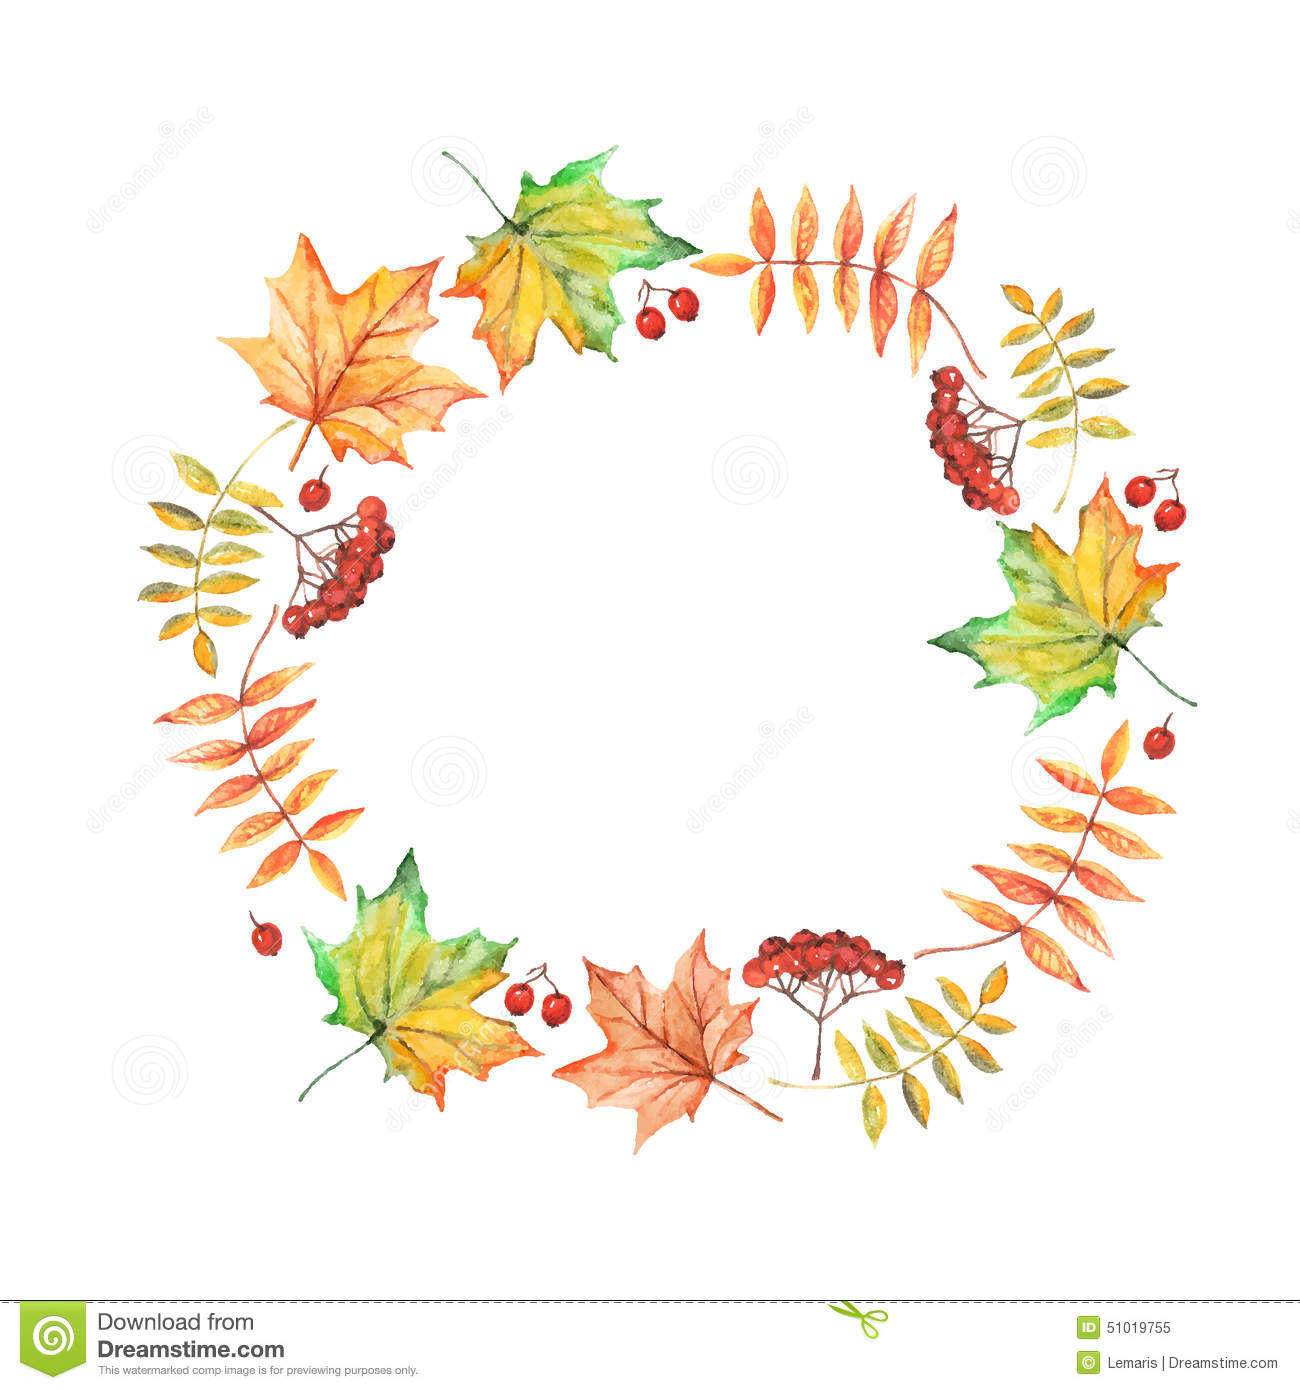 Fall Leaves Wallpaper Powerpoint Background Vector Watercolor Circle Frame With Autumn Leaves And